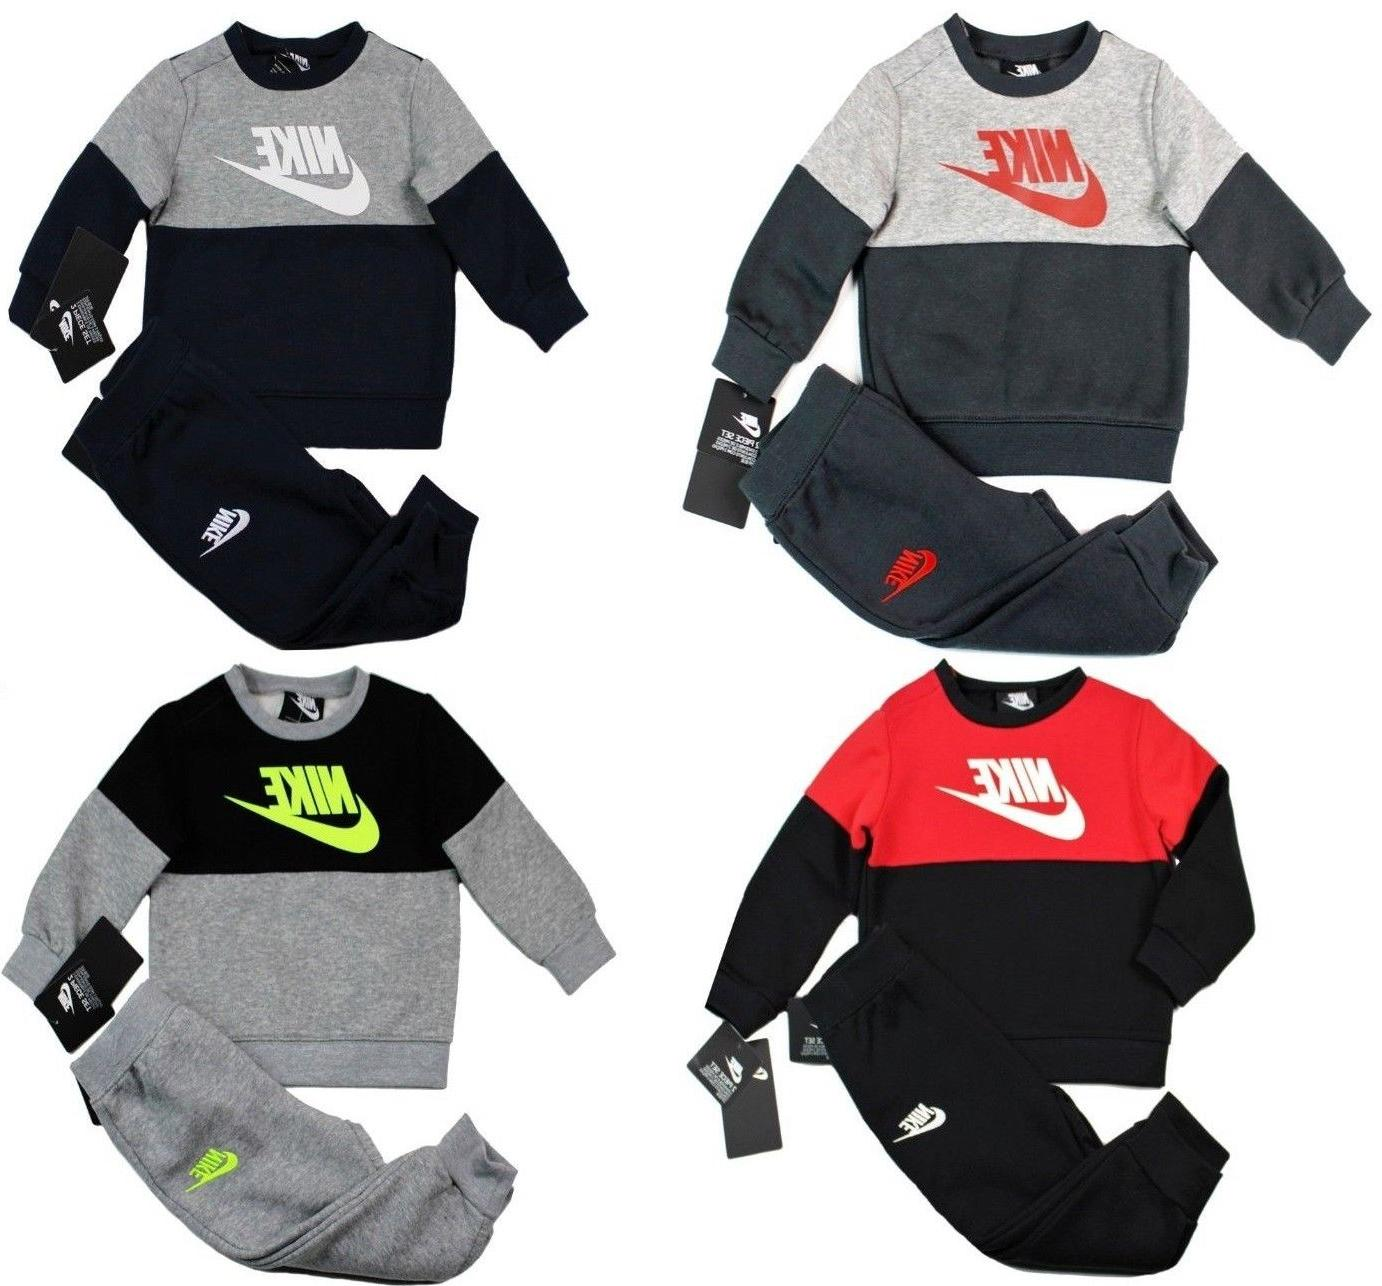 Nike Baby Boy 2 Piece Tracksuit Set Sweatshirt & Pants Outfi